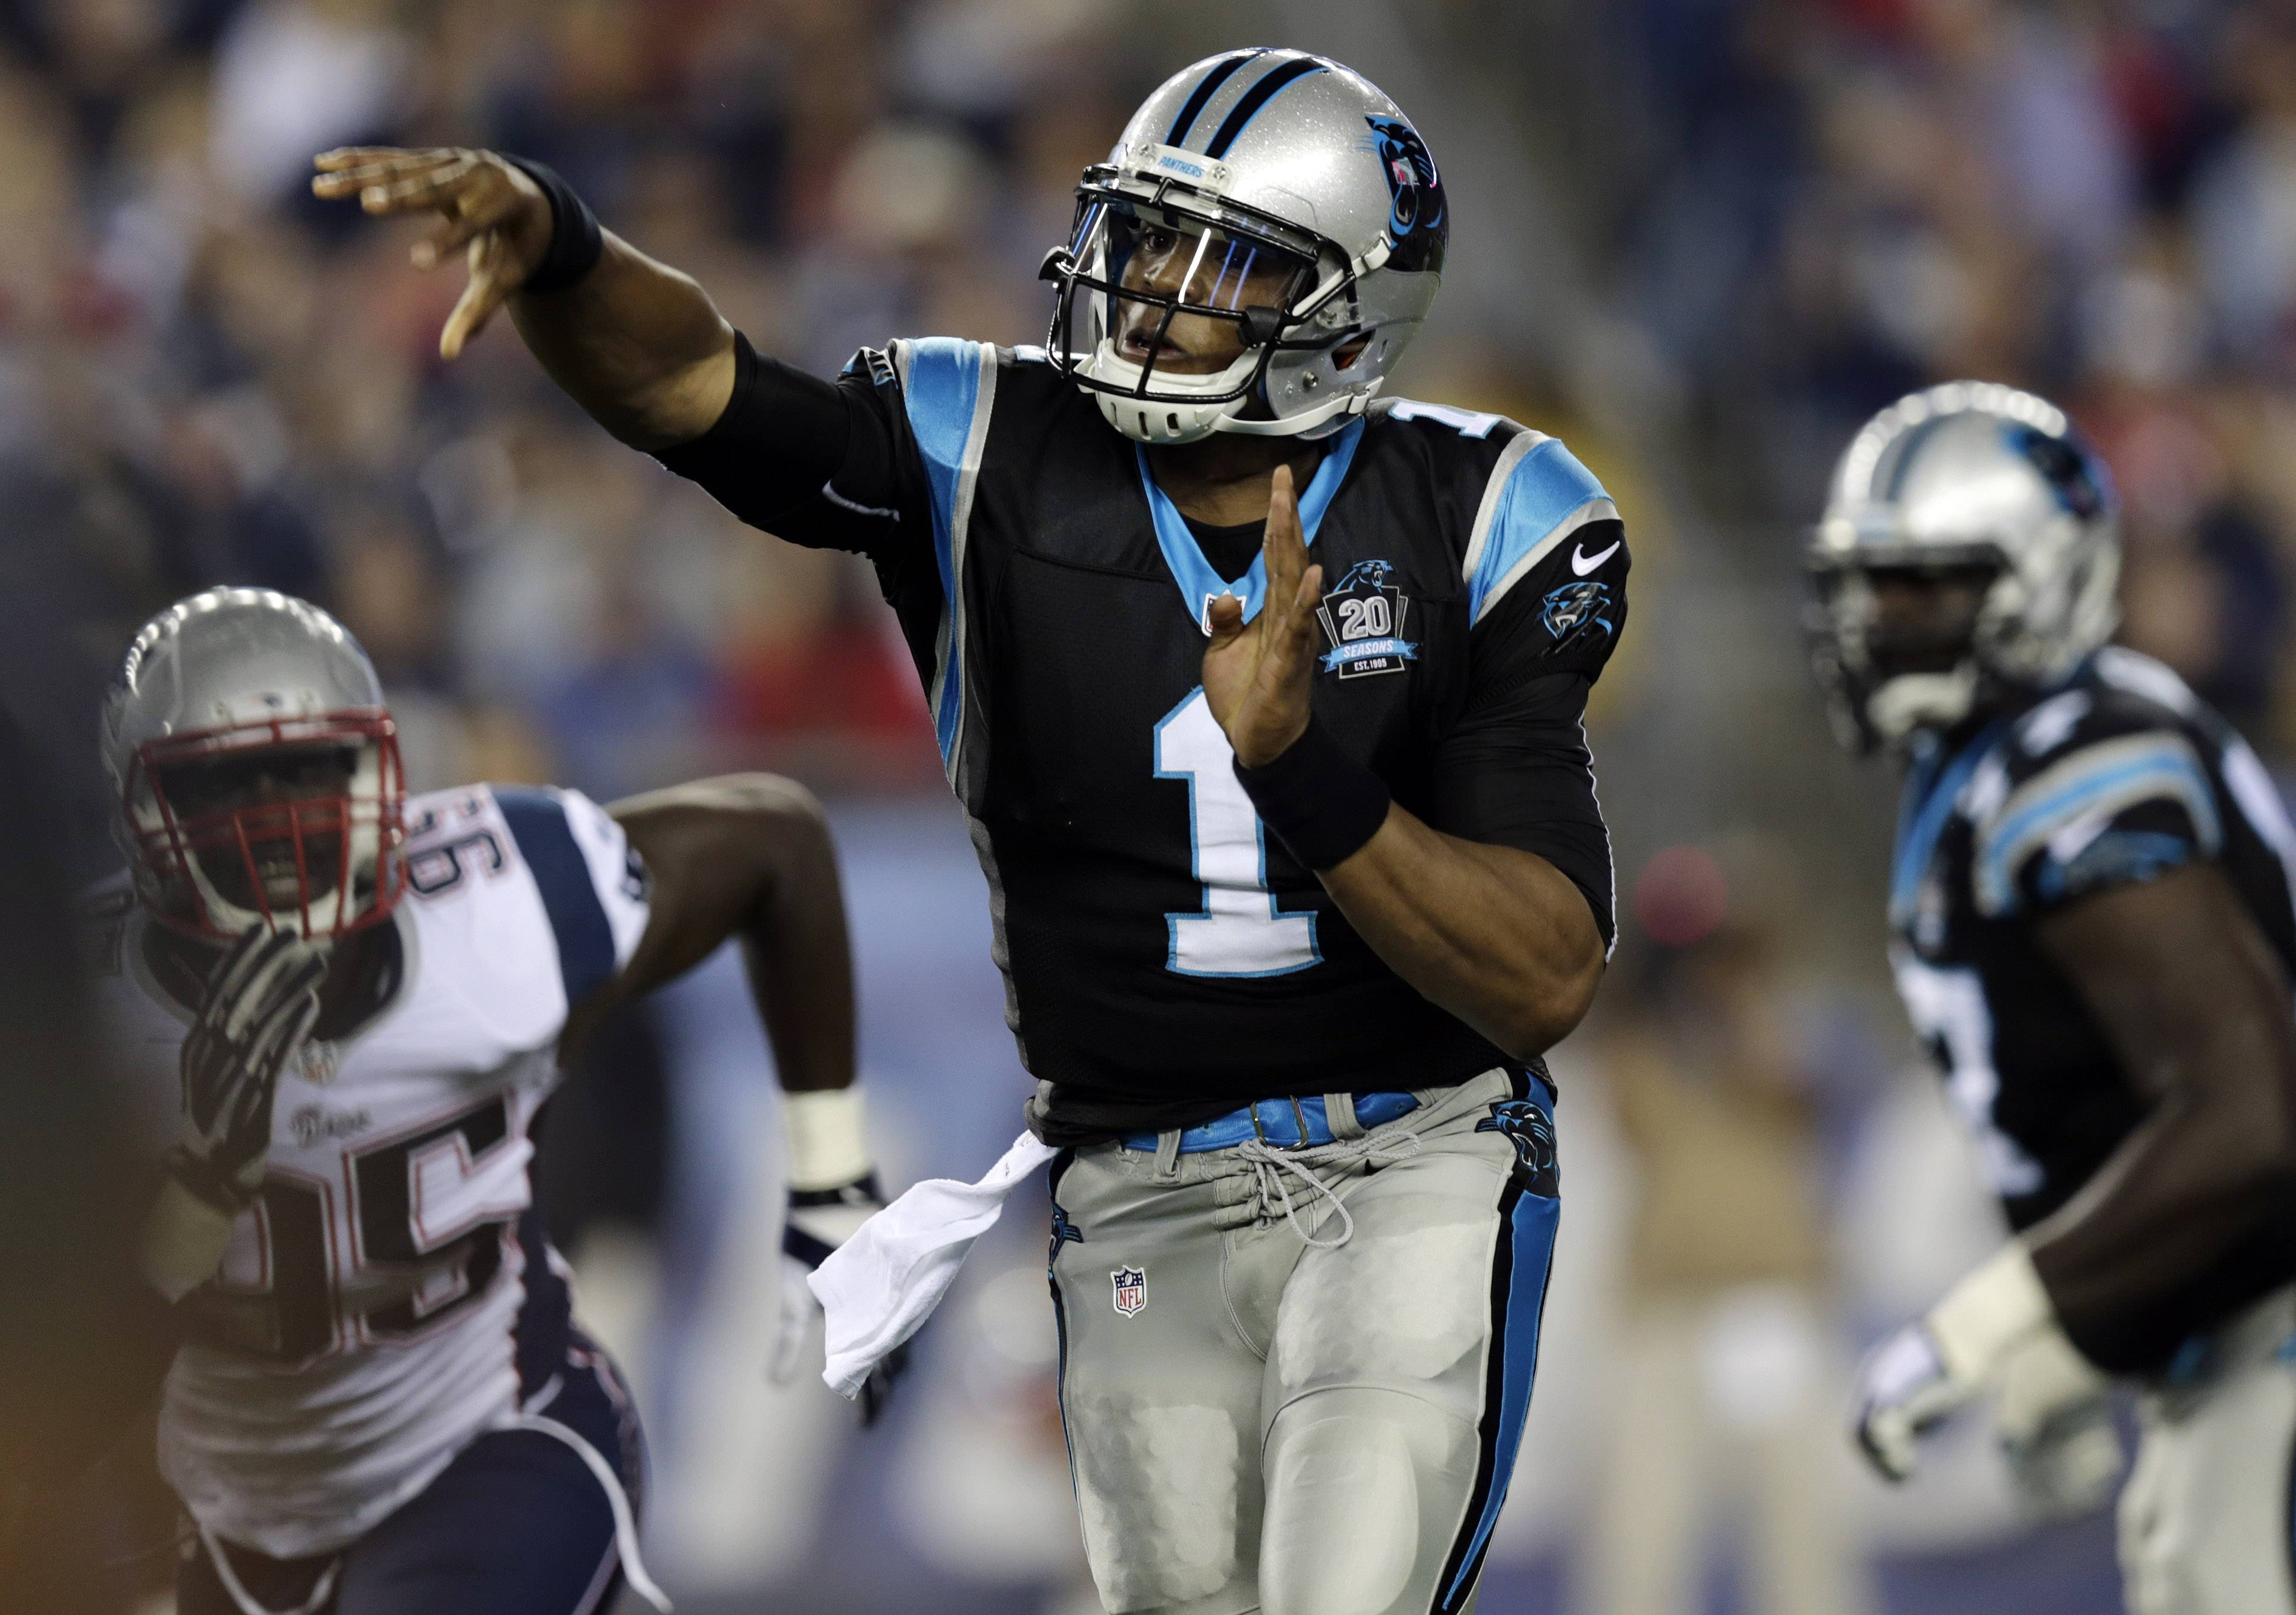 Cam Newton, who will be a gametime decision on Sunday, is a risky play according to fantasy football writer John Dietz